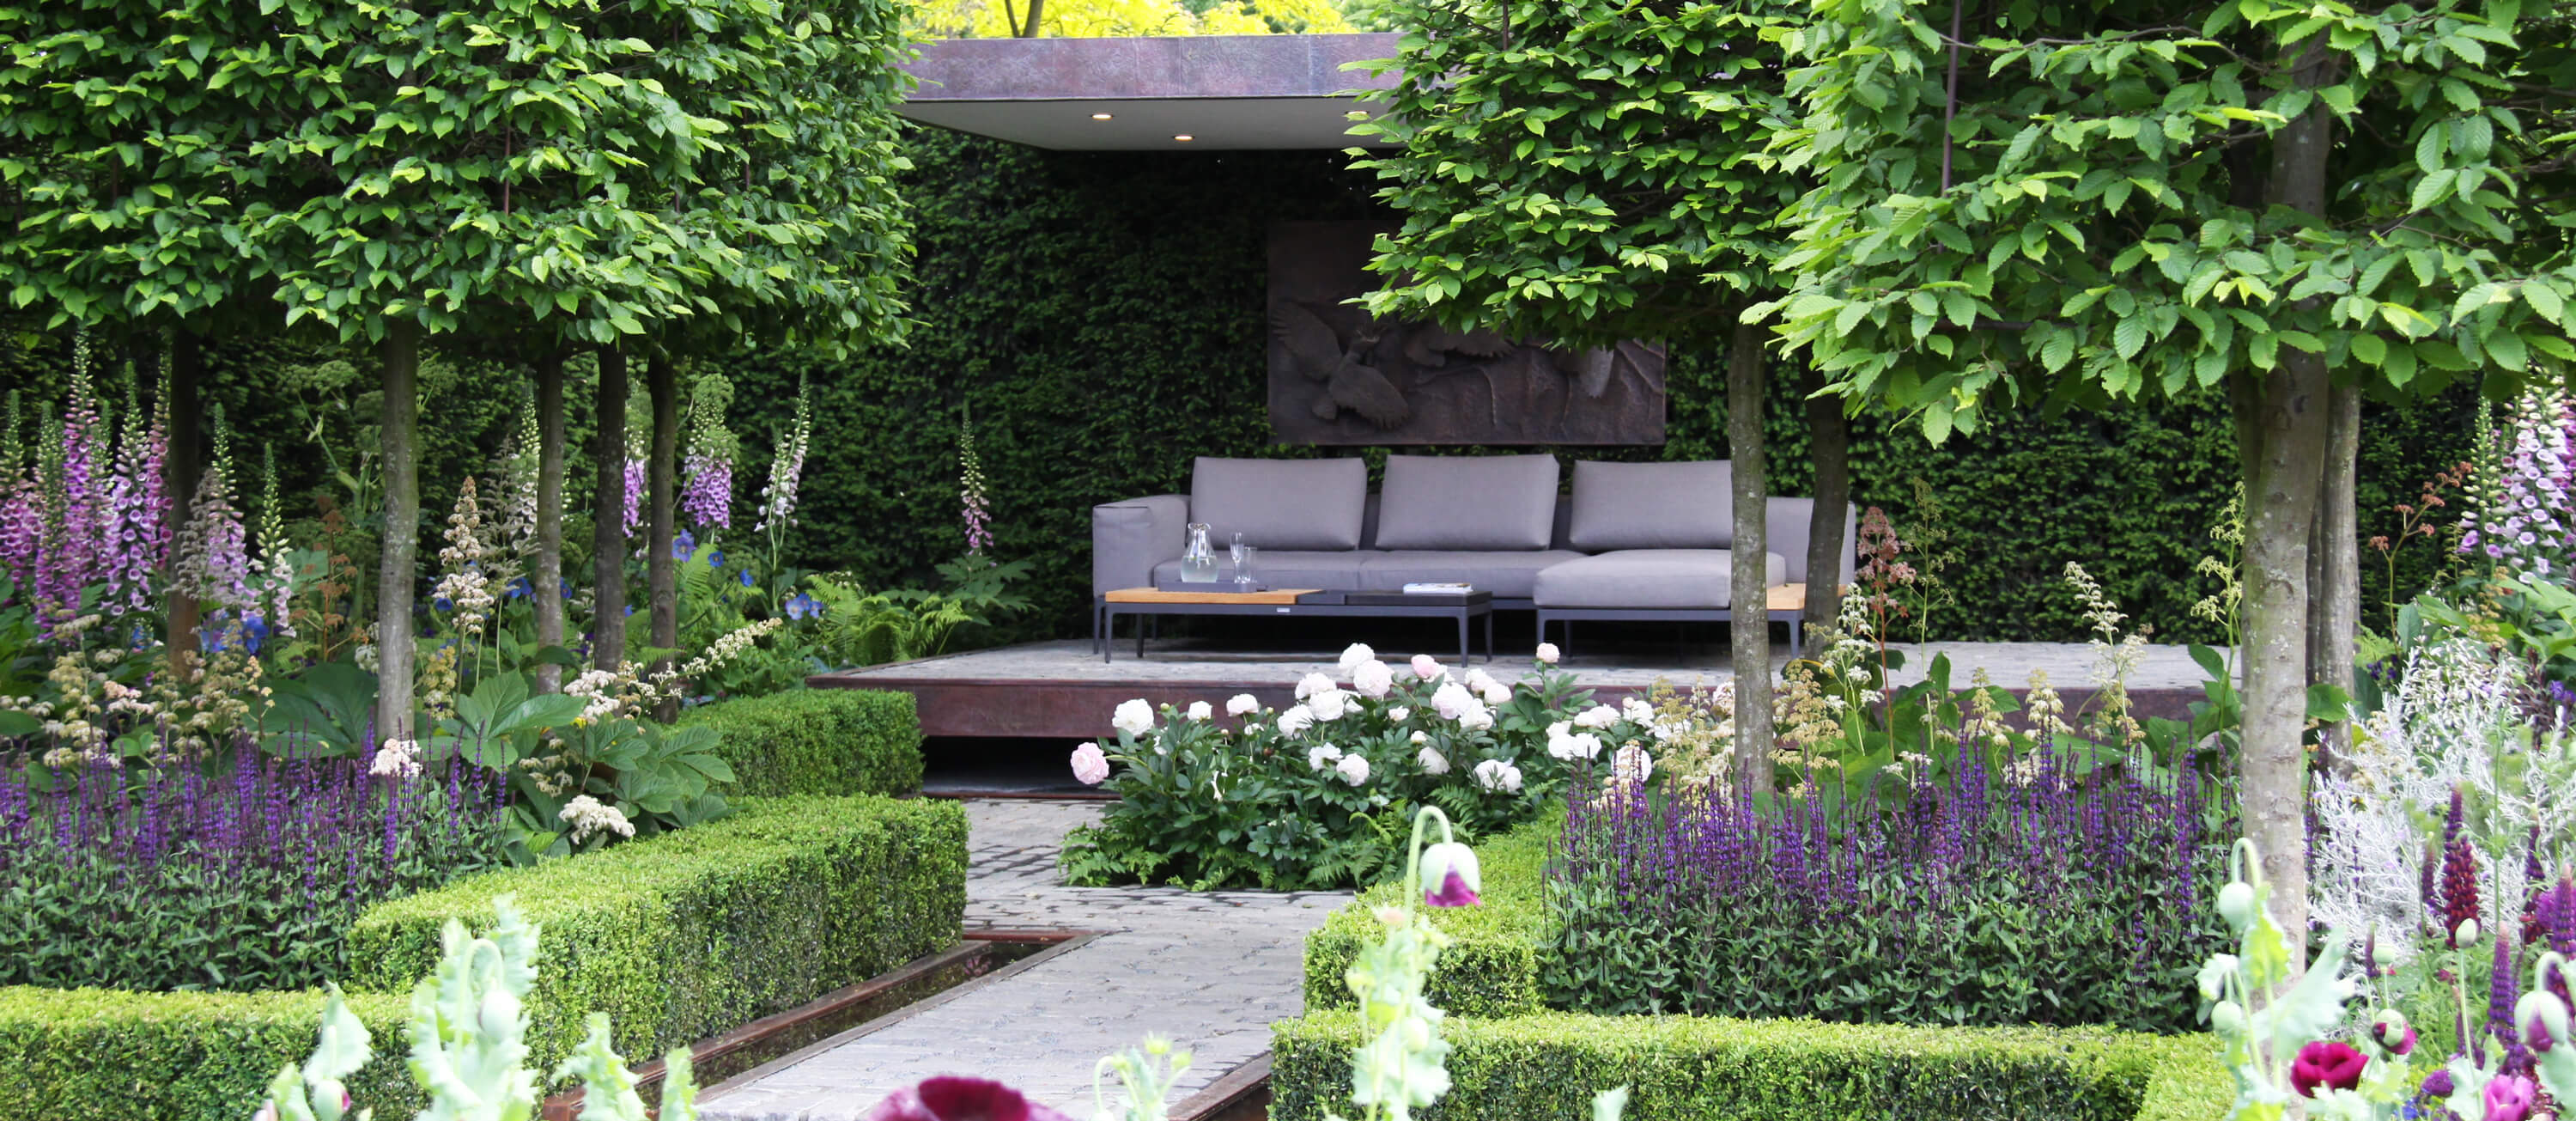 garten inspiration an der chelsea flower show london. Black Bedroom Furniture Sets. Home Design Ideas